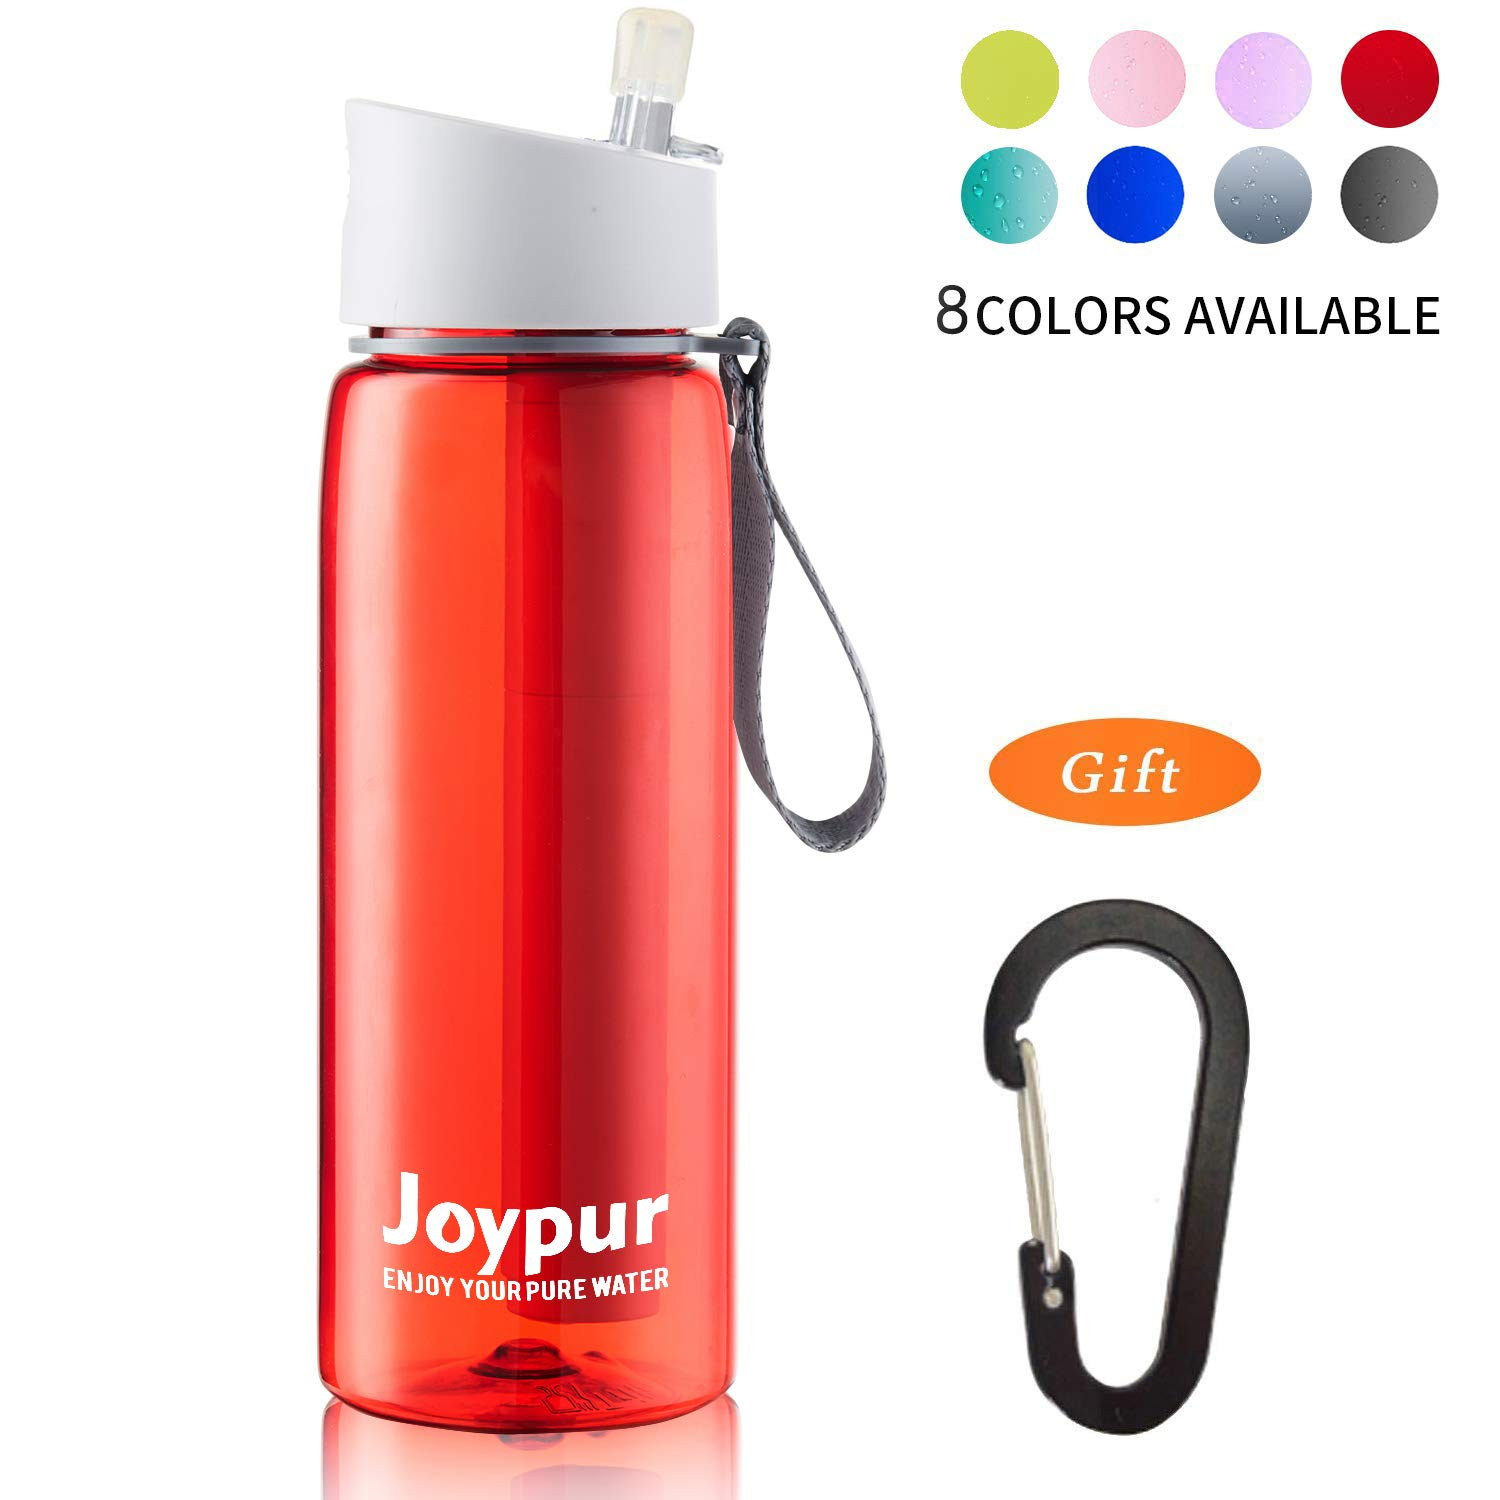 joypur Outdoor Filtered Water Bottle - Camping Water Filter with 3-Stage Integrated Water Purifier for Travel Hiking Backpacking Red by joypur